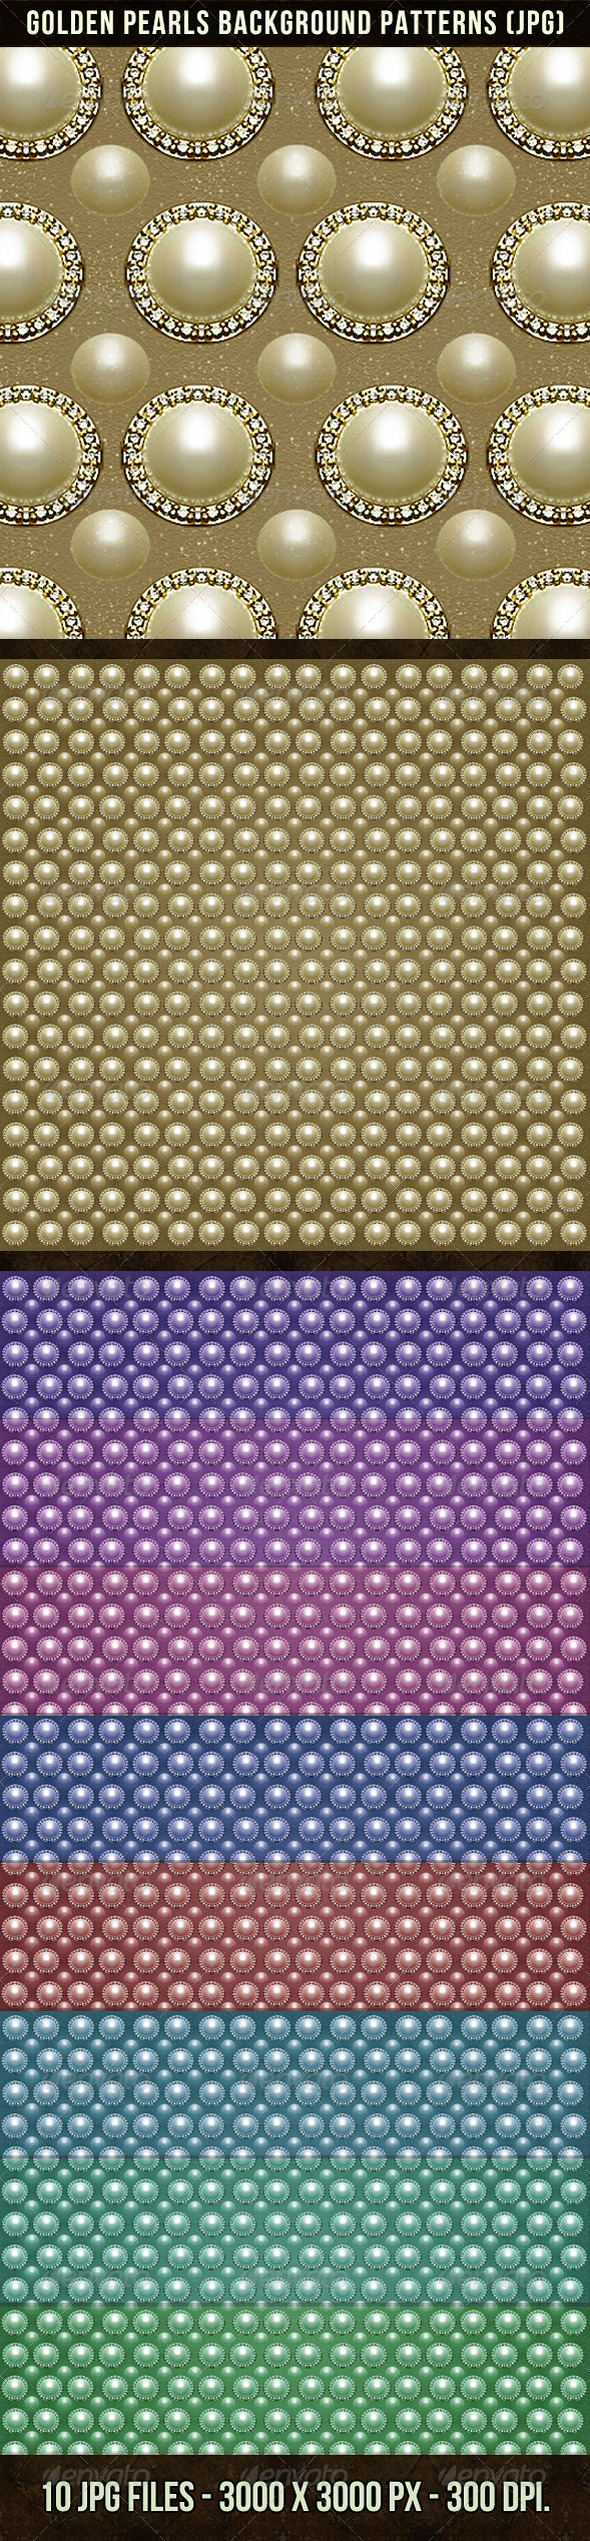 Golden Pearls Background Patterns - Patterns Decorative